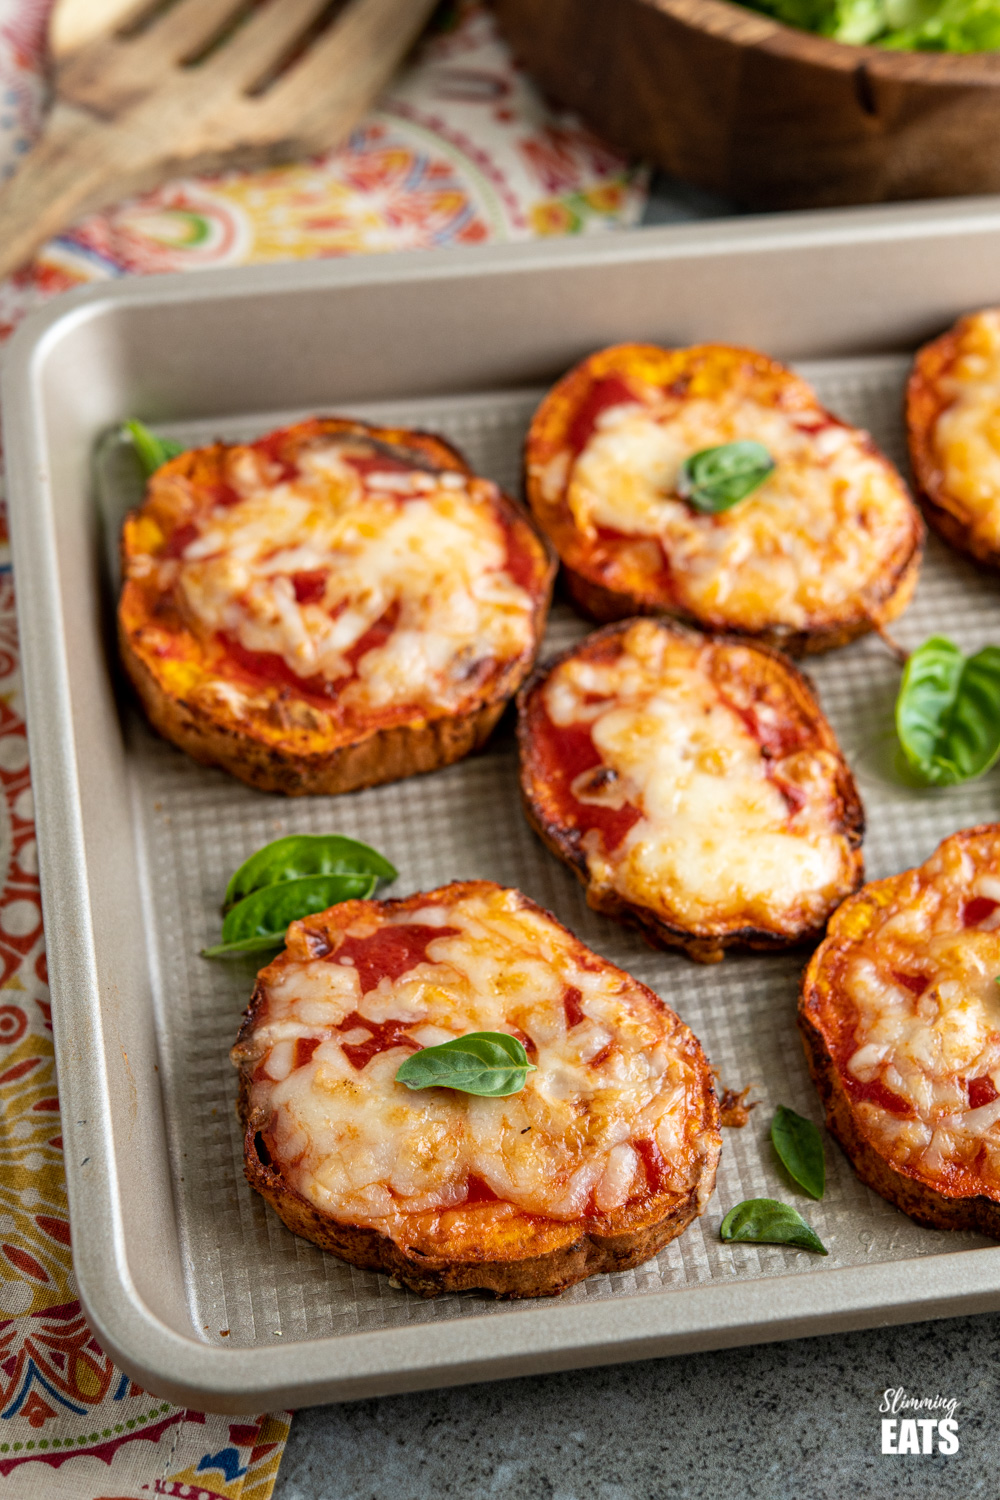 pizza sweet potato slices on baking tray on patterned napkin with bowl of salad and spatula in background